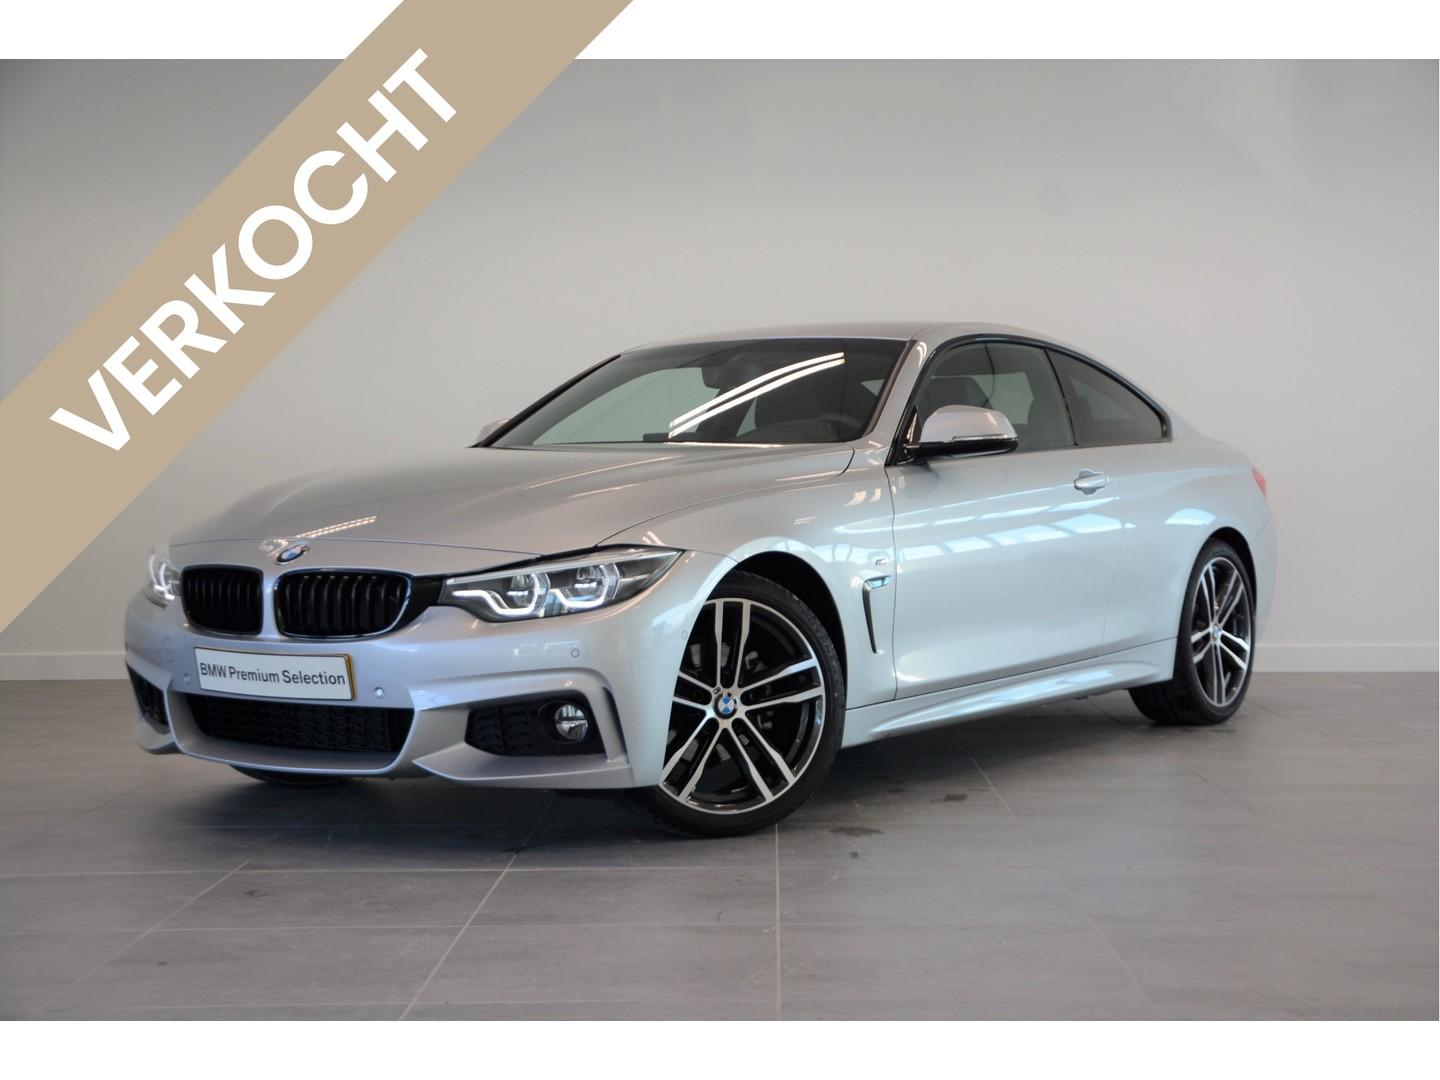 Bmw 4 serie Coupé 420i high executive m sportpakket aut.